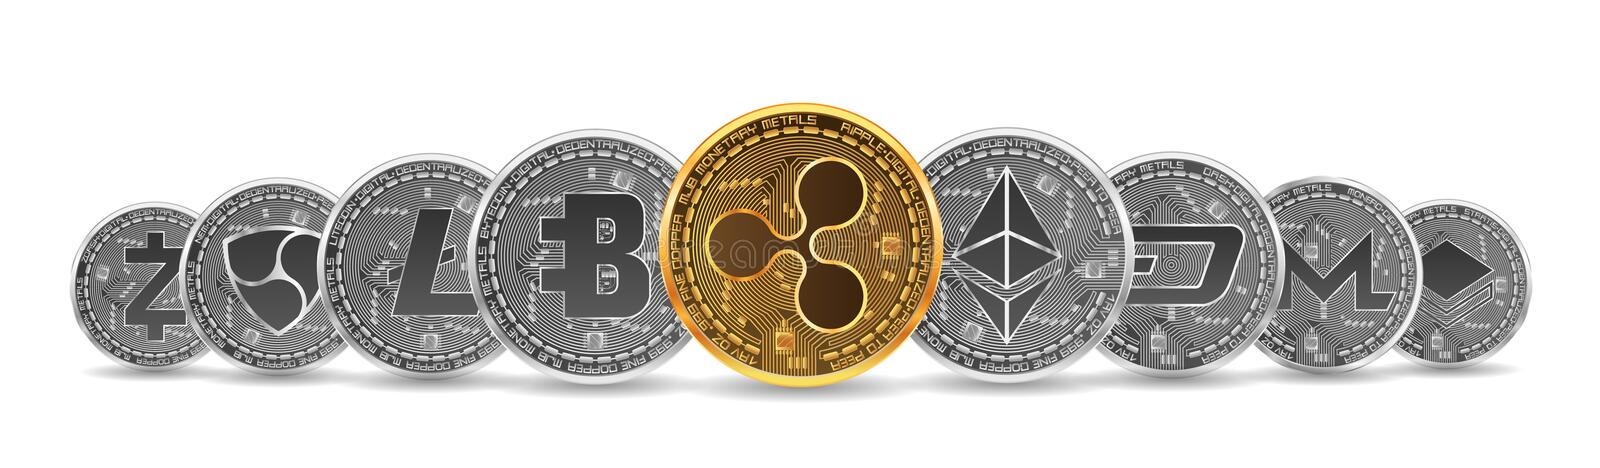 Set of gold and silver crypto currencies royalty free illustration